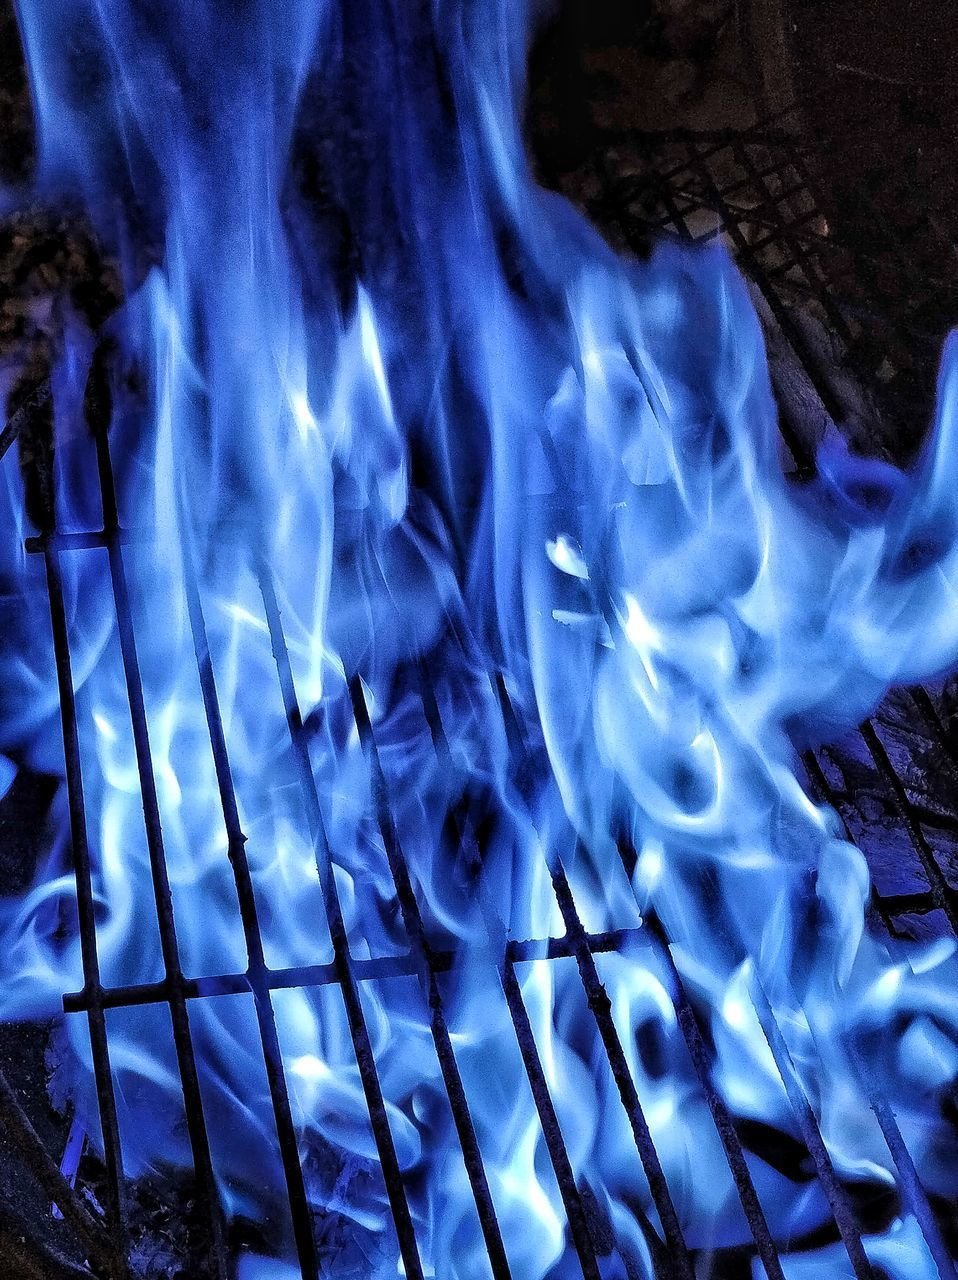 burning, blue, motion, heat - temperature, fire, fire - natural phenomenon, no people, long exposure, flame, pattern, night, nature, glowing, blurred motion, close-up, illuminated, indoors, smoke - physical structure, abstract, light - natural phenomenon, purple